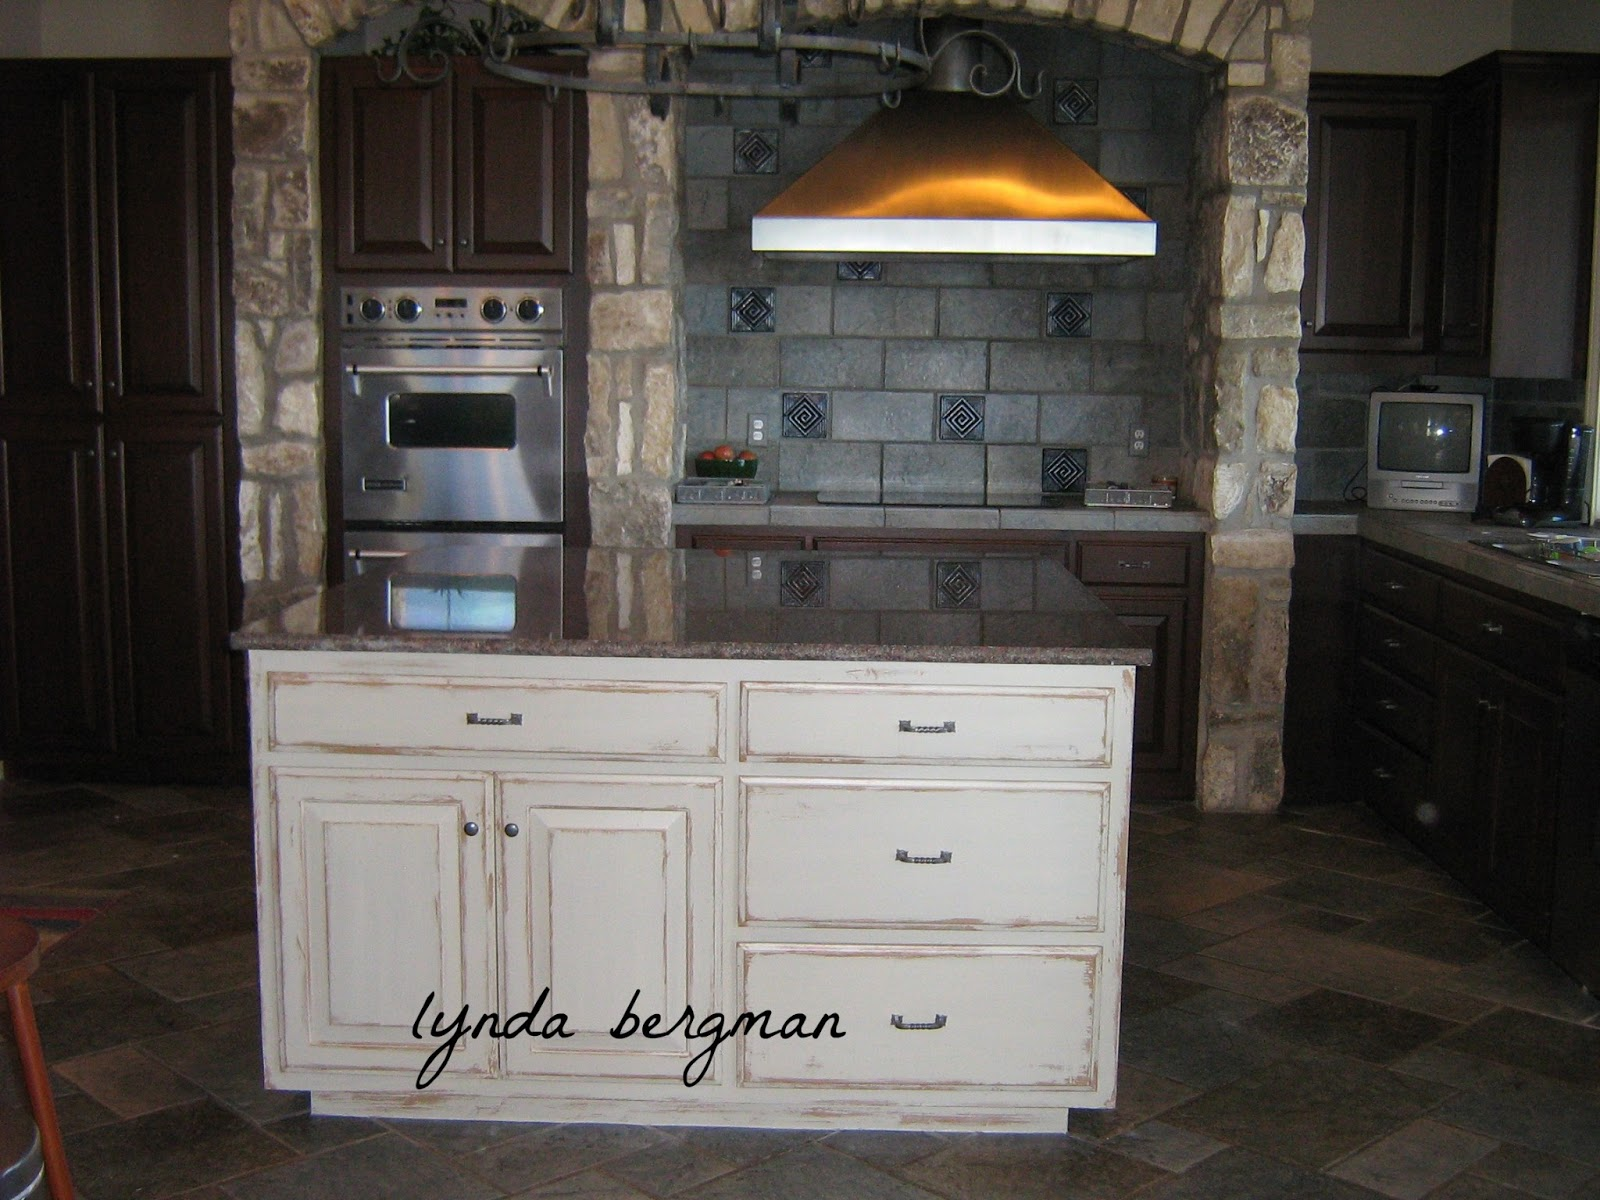 hand painted kitchen cabinets to distressed kitchen cabinets WHITE KITCHEN CABINETS TO A HAND PAINTED STAINED WOOD LOOK AND WHITE DISTRESSED KITCHEN ISLAND